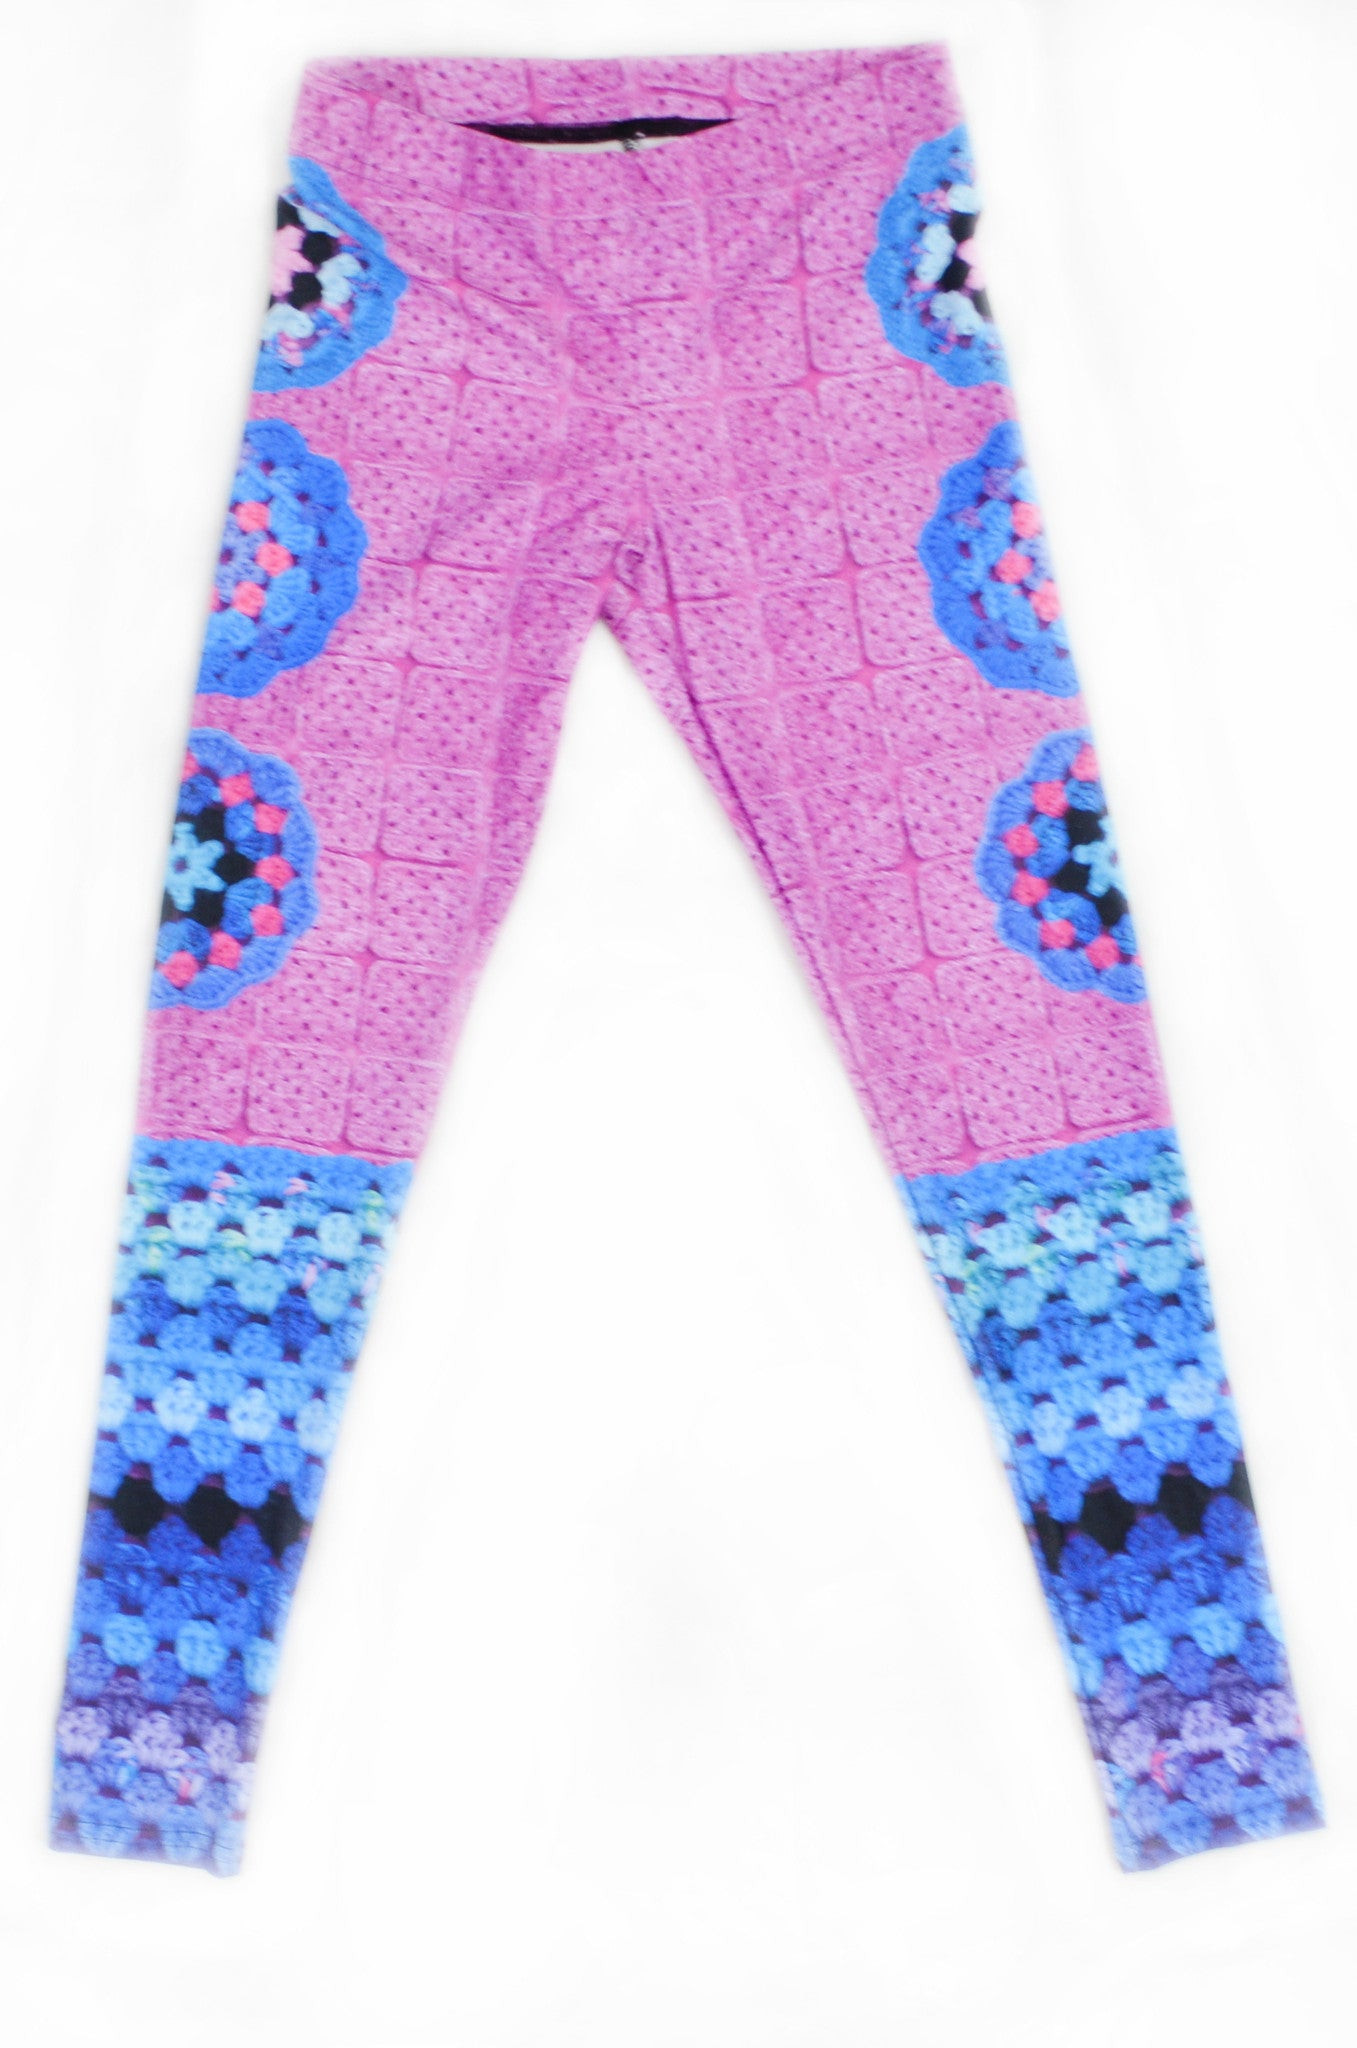 Snapdragon Brand Clothing Granny Square Crochet Print pink and turquoise leggings in style Mermaid Queen features a 1960s vintage boho feel and an ocean of colors. Made of comfortable spandex.